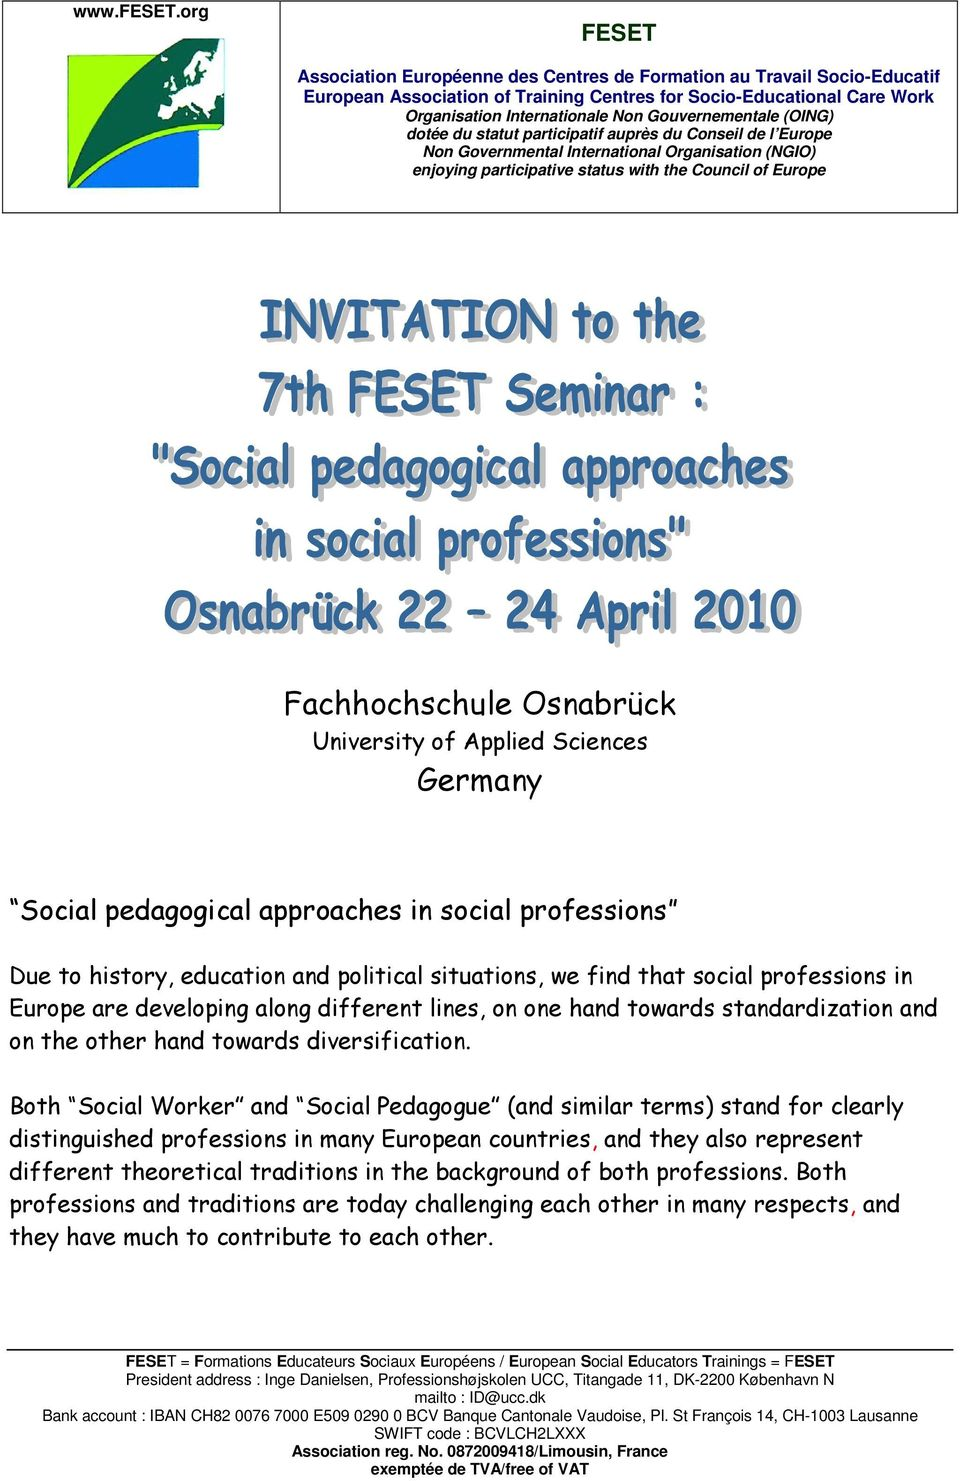 Both Social Worker and Social Pedagogue (and similar terms) stand for clearly distinguished professions in many European countries, and they also represent different theoretical traditions in the